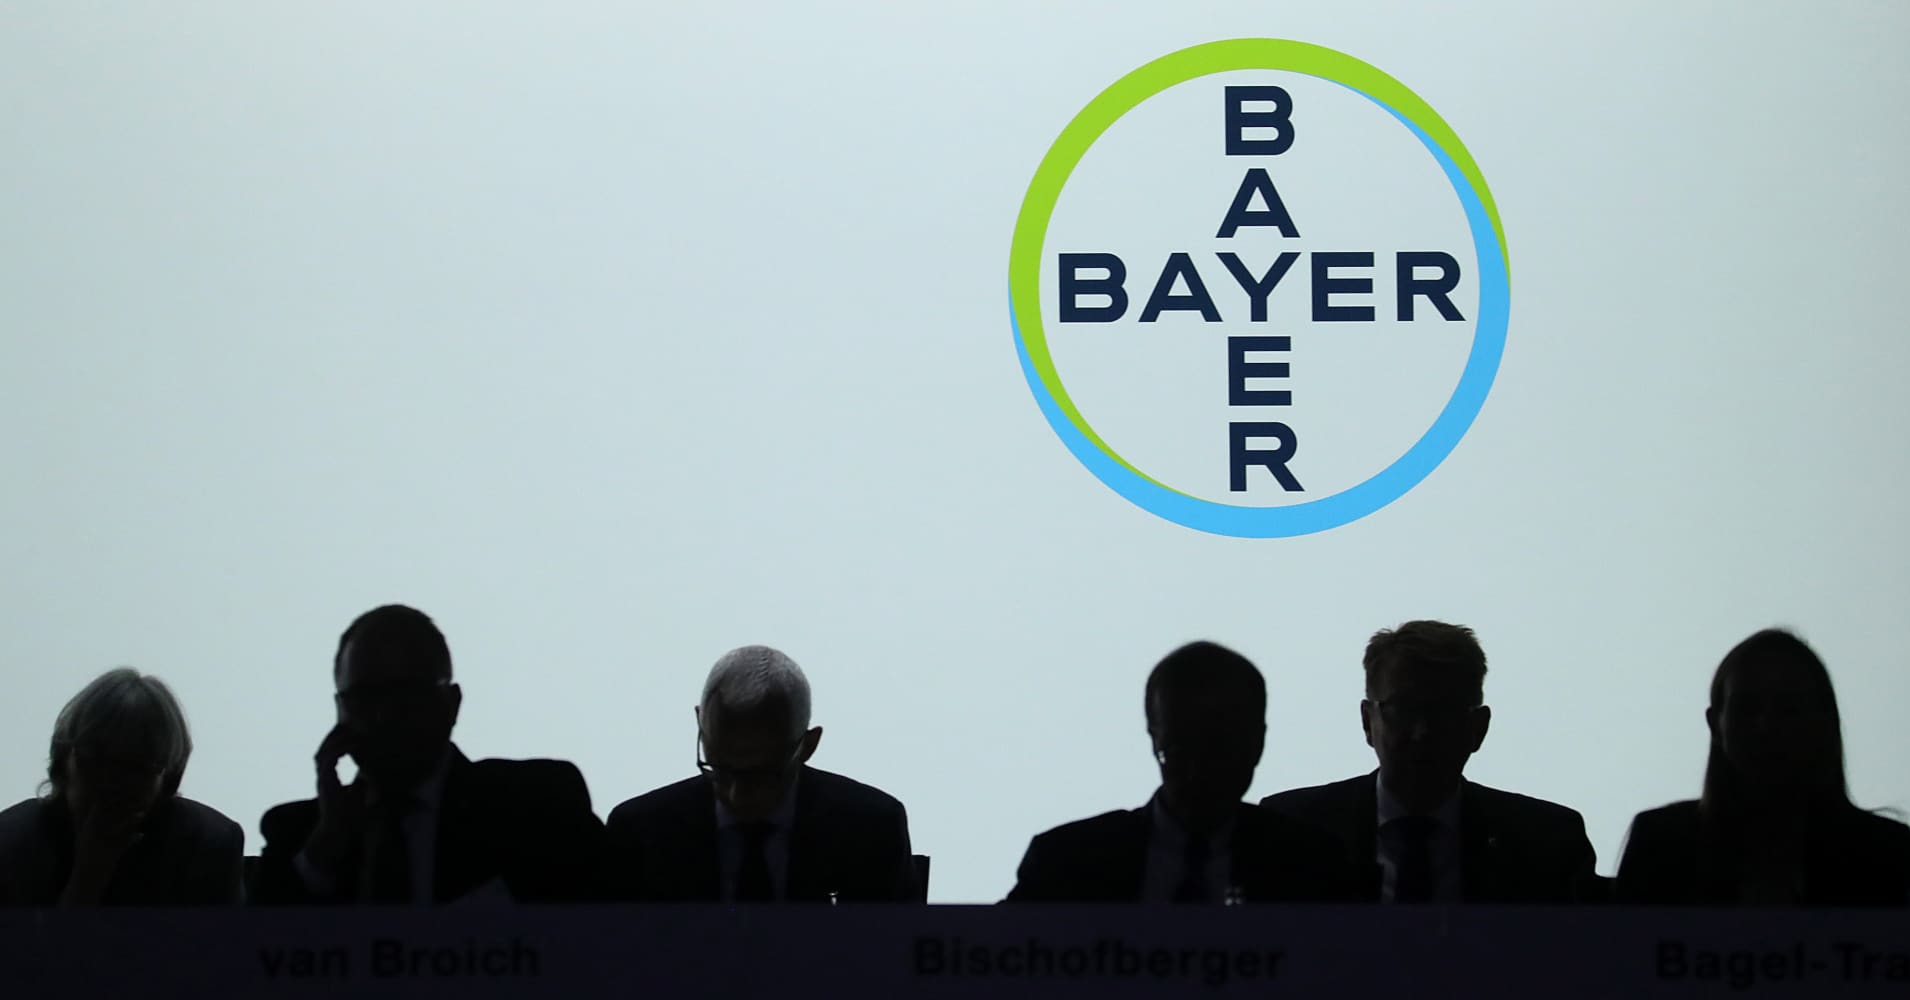 Bayer adjusted profit gains 15.8% on Monsanto, consumer health